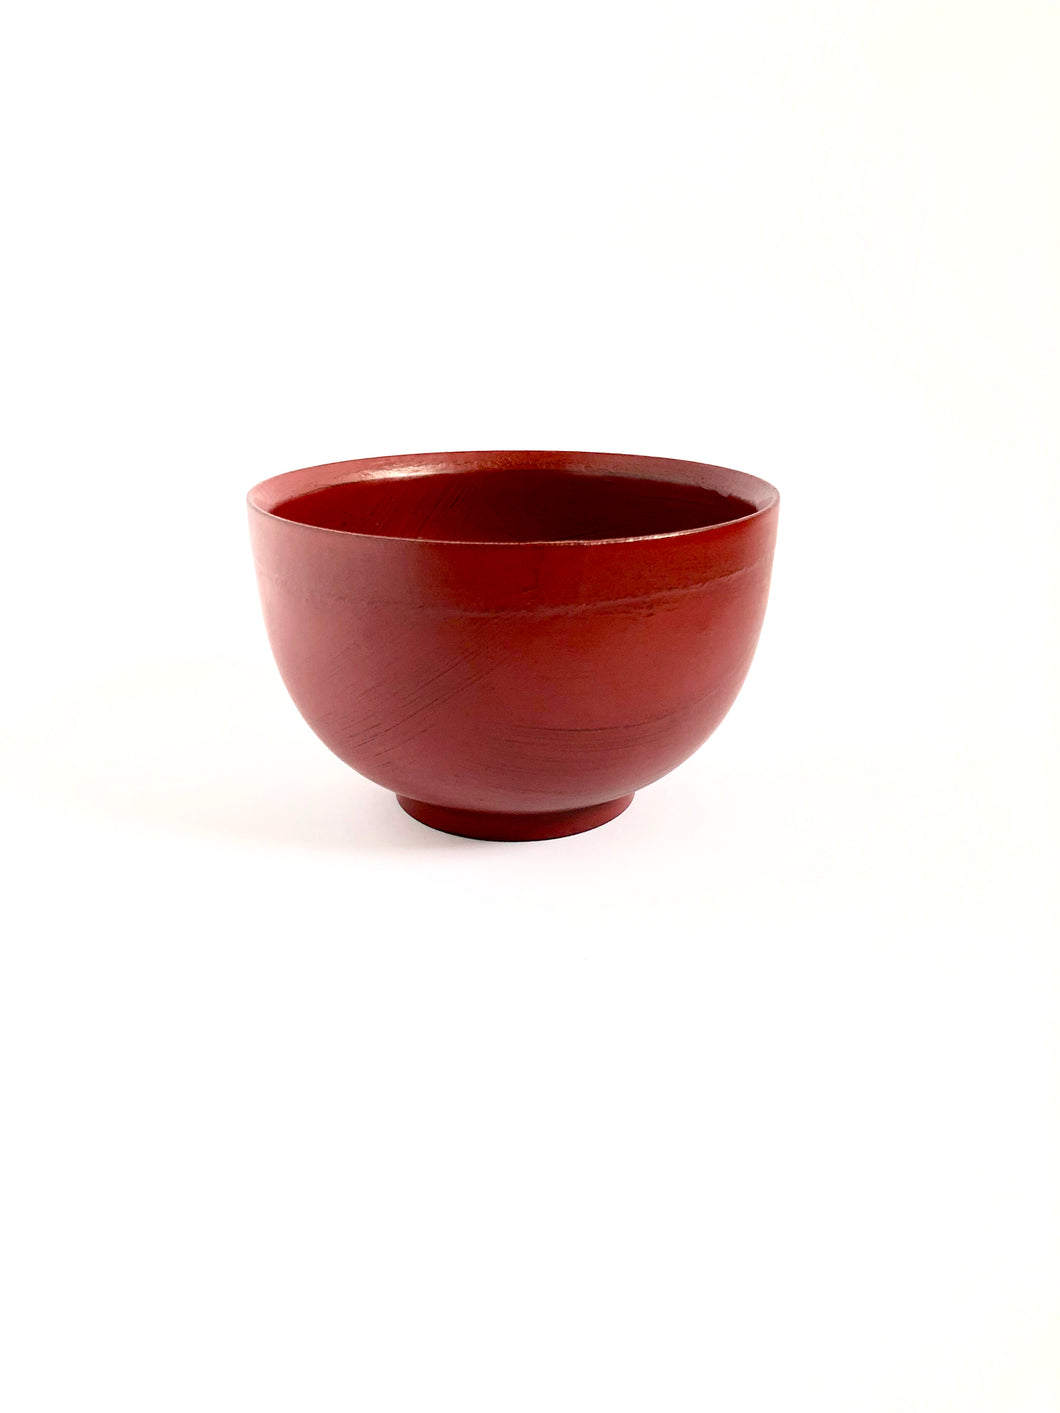 Japanese Lacquered Multi Use Bowl - 漆塗り渕布多用椀